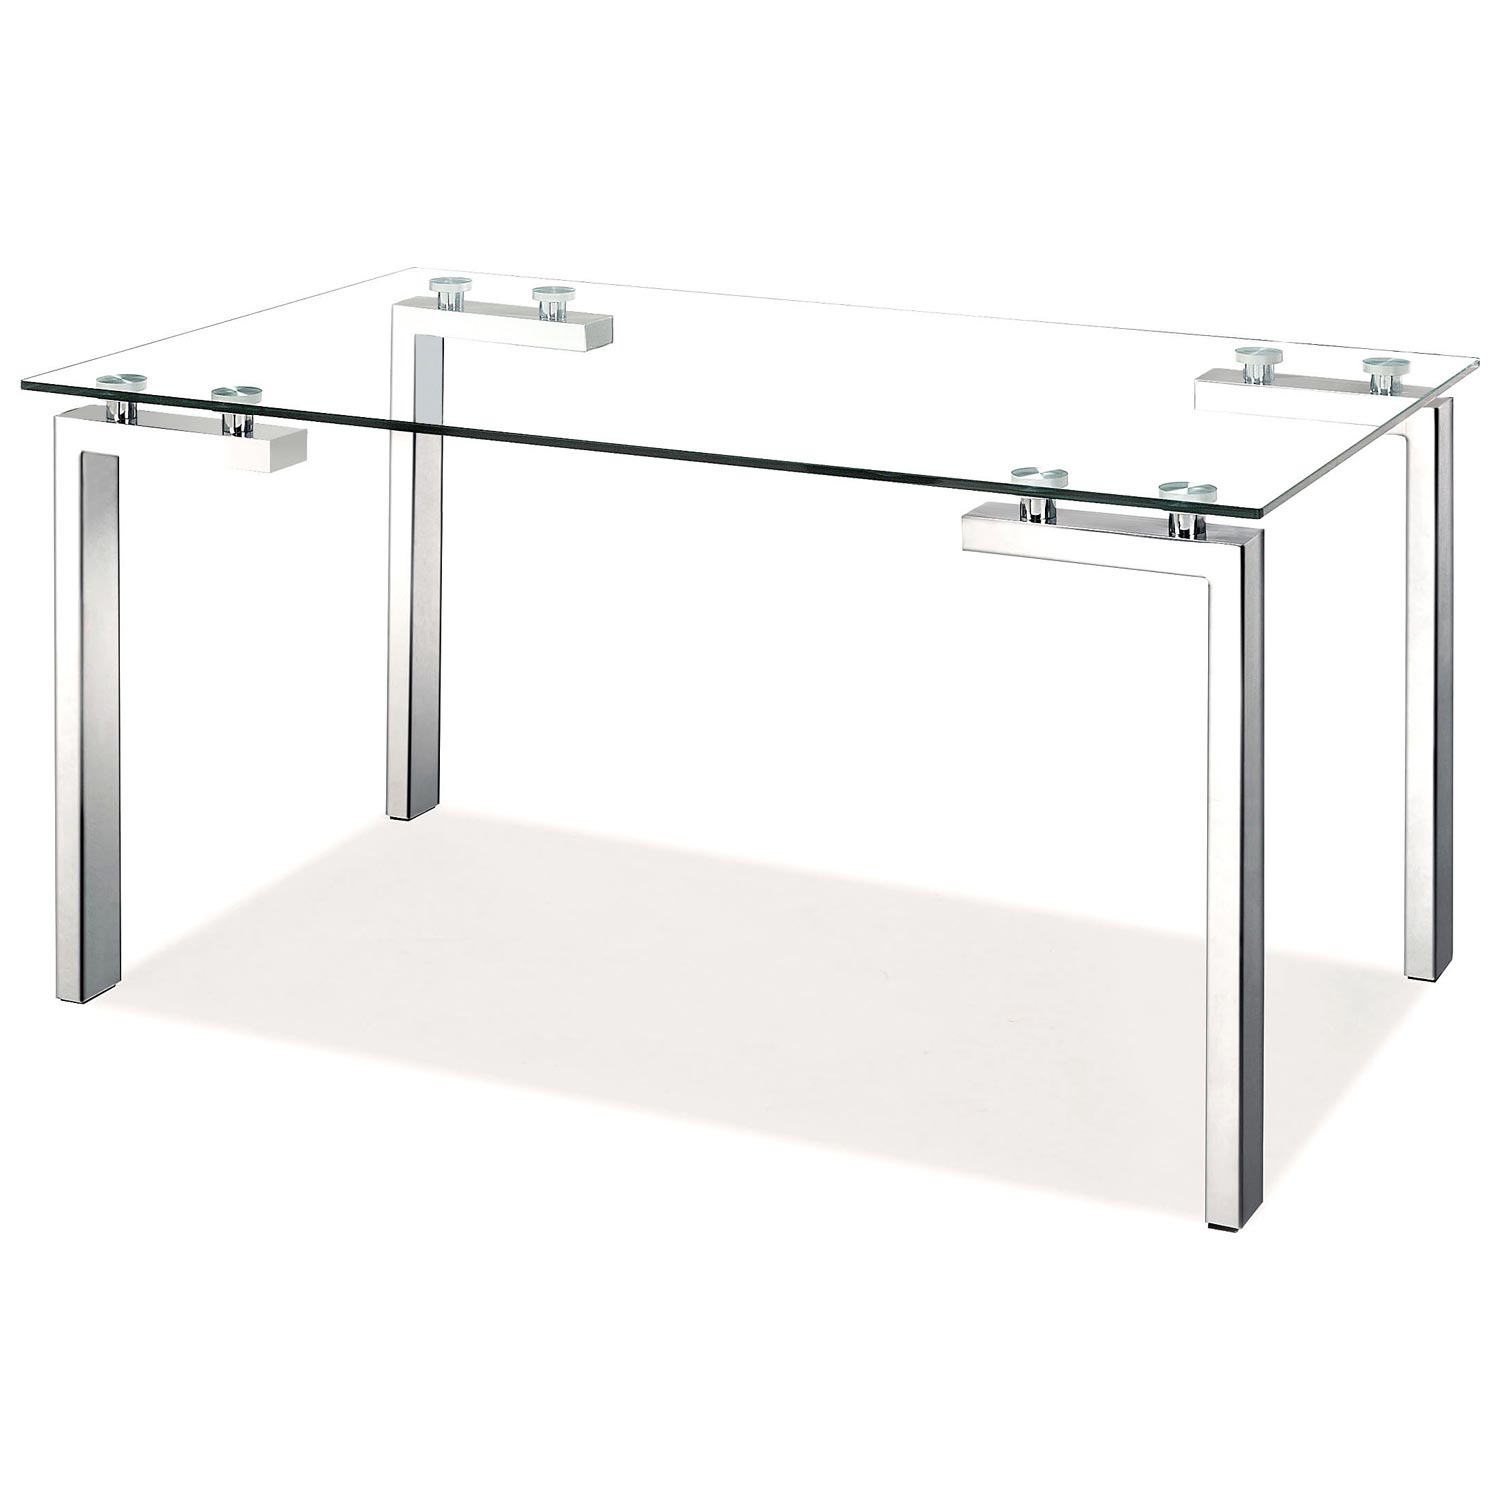 Roca Modern Dining Table - Tempered Glass, Stainless Steel - ZM-102142